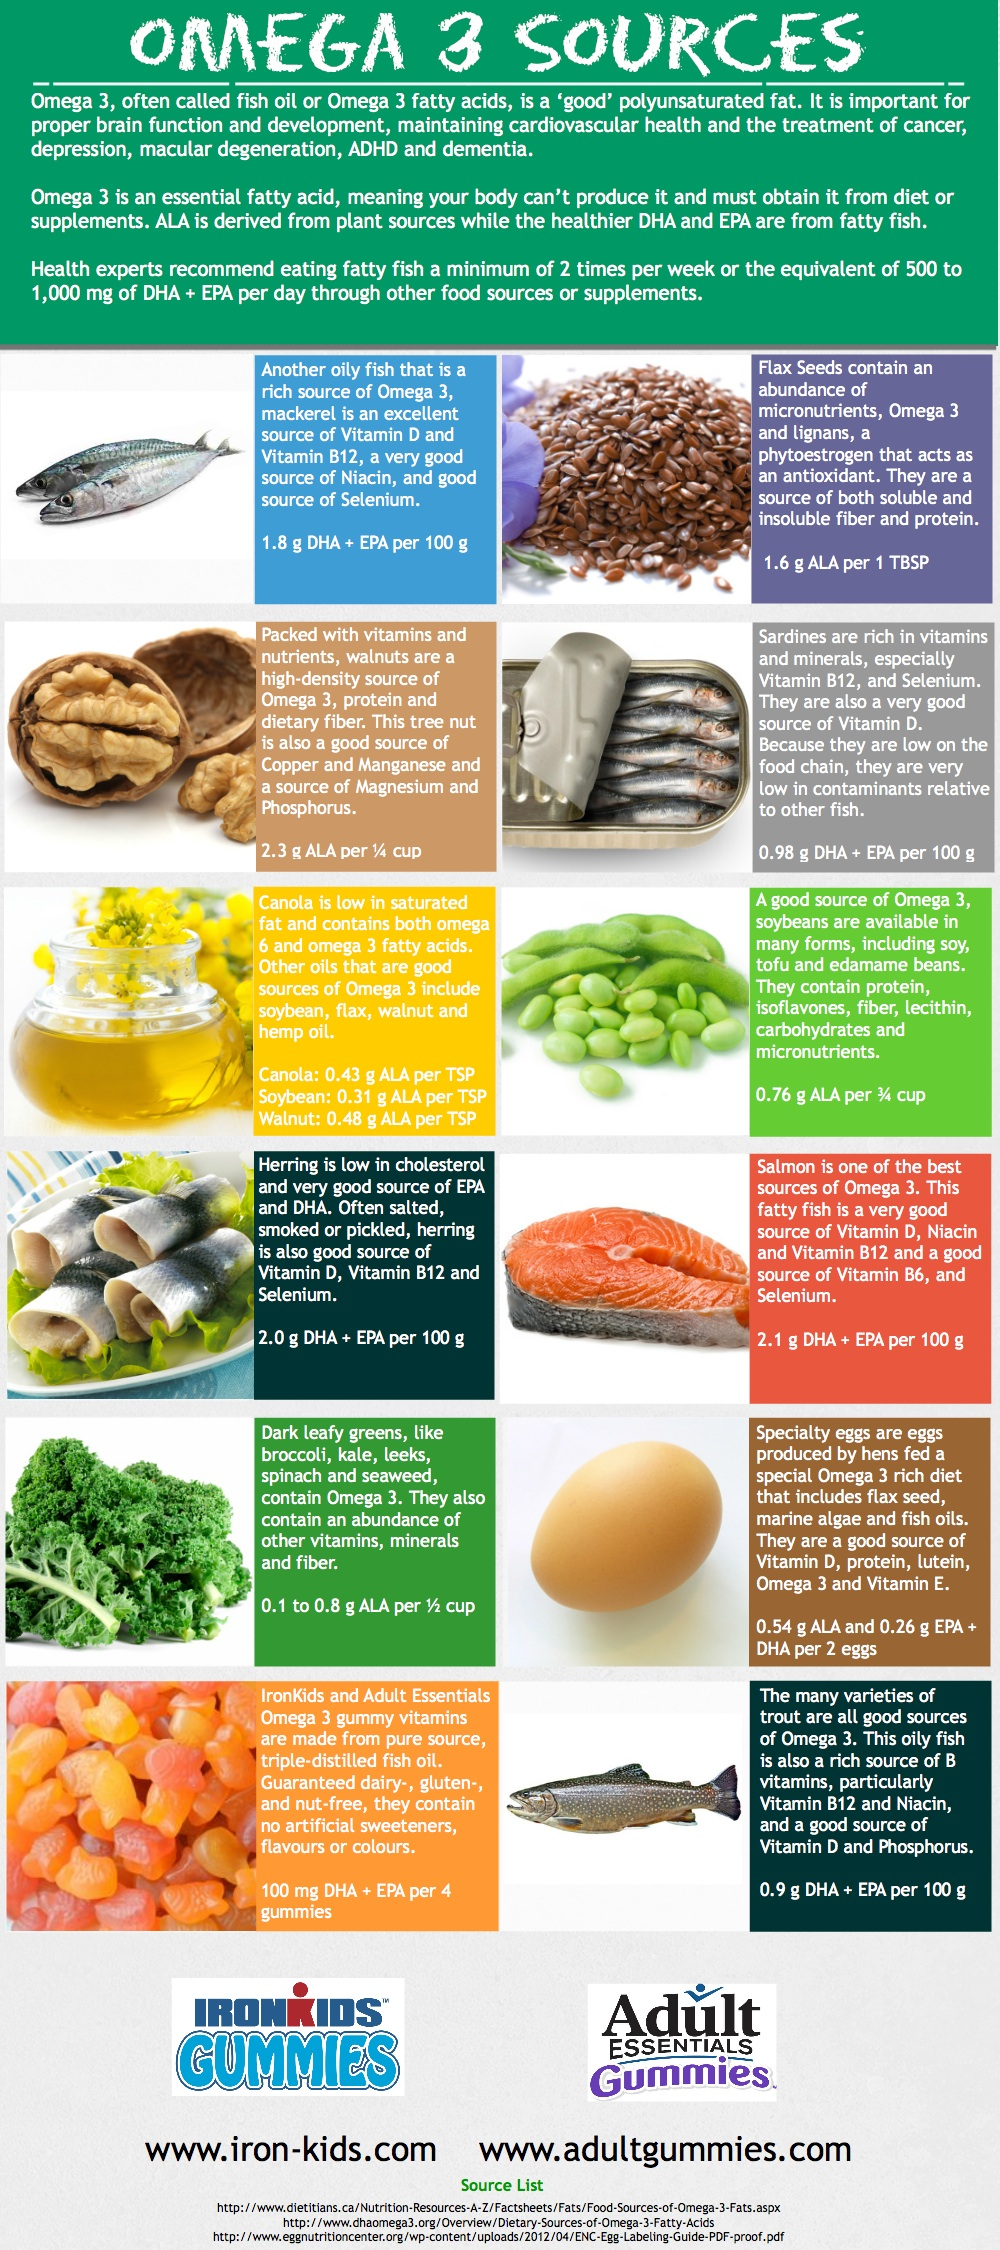 Getting Your Daily Dose Of Omega-3 - Infographic